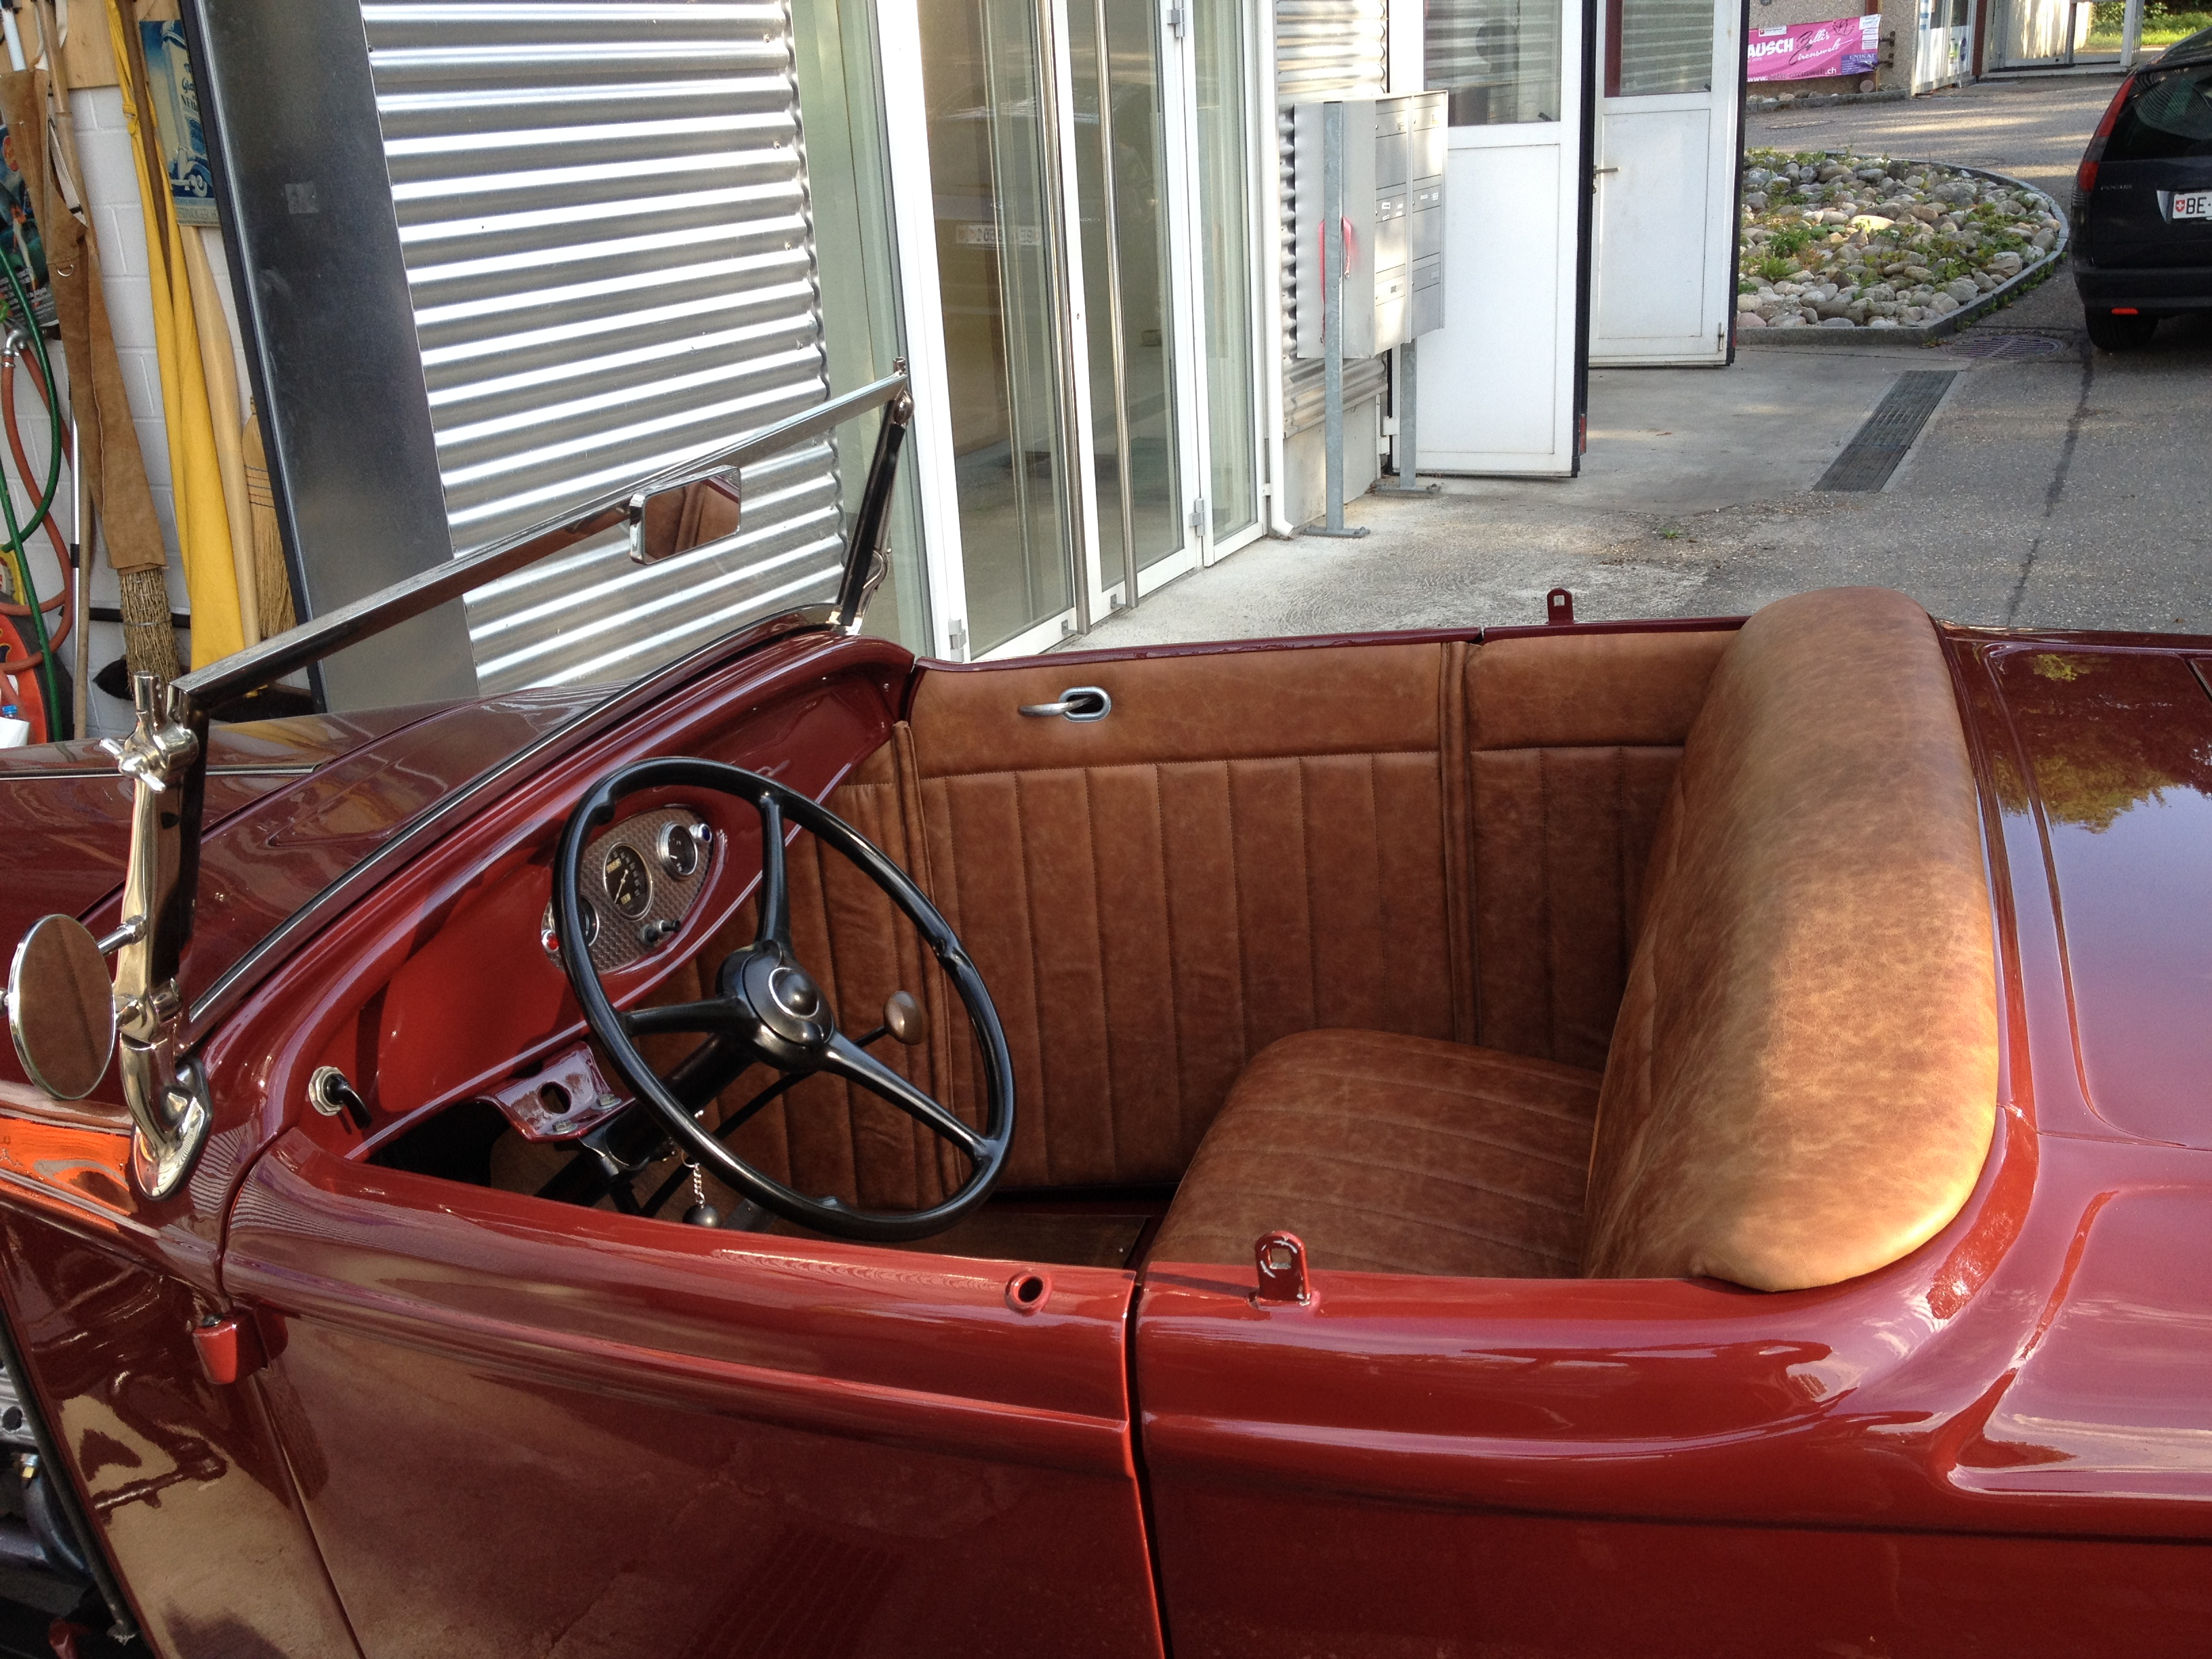 7-Hot_Rod_interieur.jpg